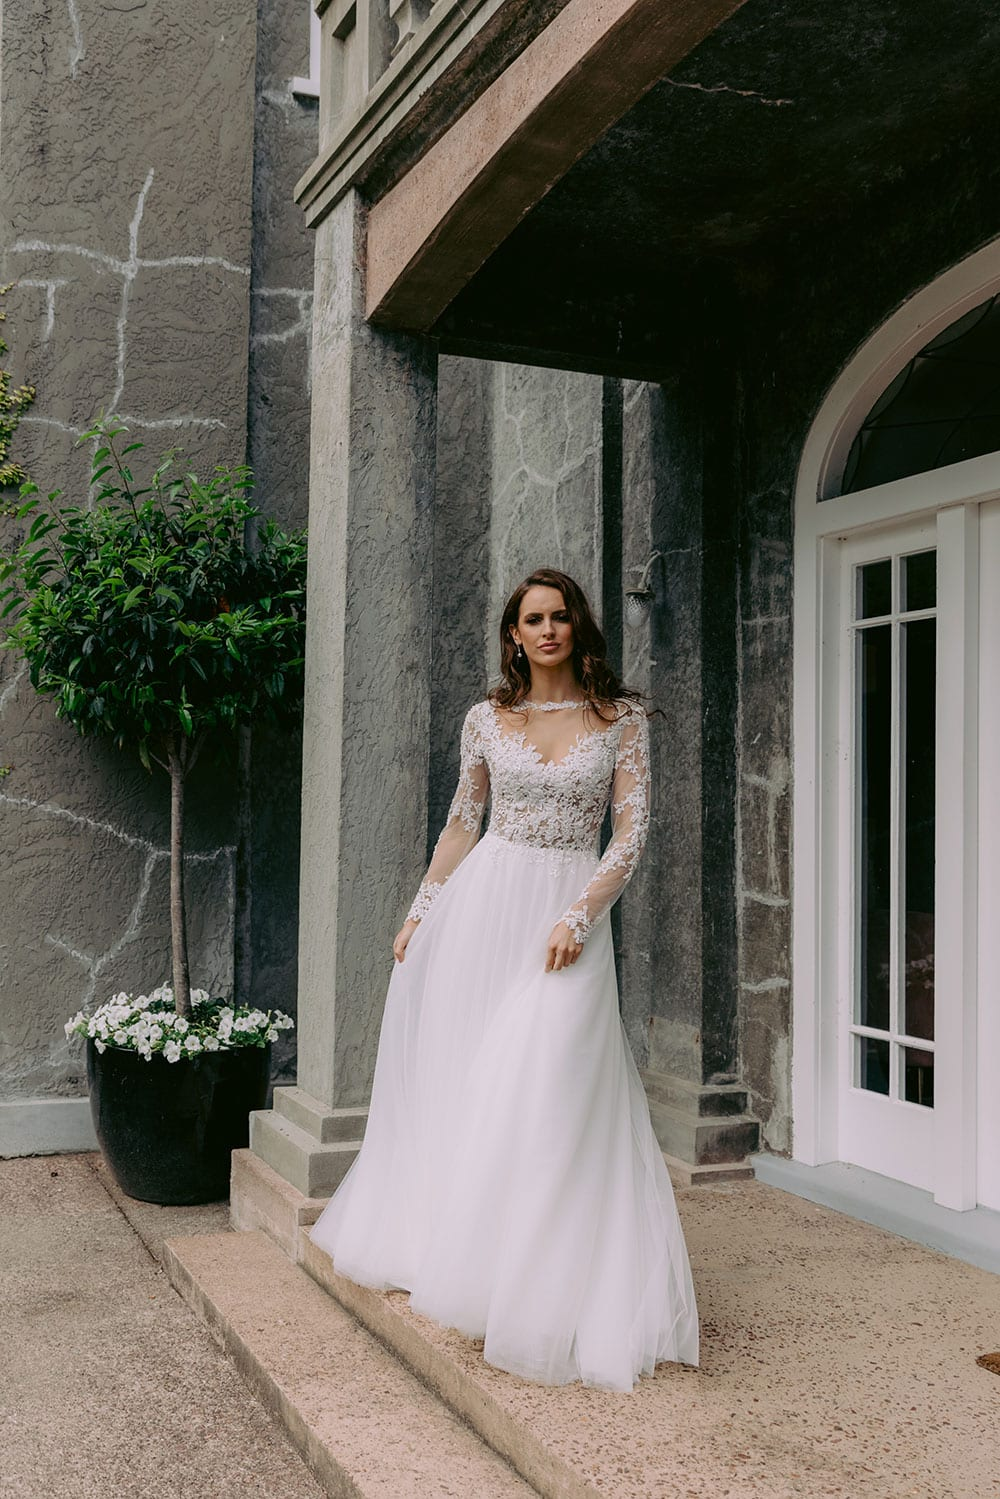 Maia Wedding gown from Vinka Design - This feminine & romantic wedding dress features beautiful pearl & bead embroidery over 3D lace. Long sleeves with pearl buttons, illusion neckline and skirt of dreamy layers of soft tulle. Model wearing gown outside heritage building in Clevedon, near Auckland.